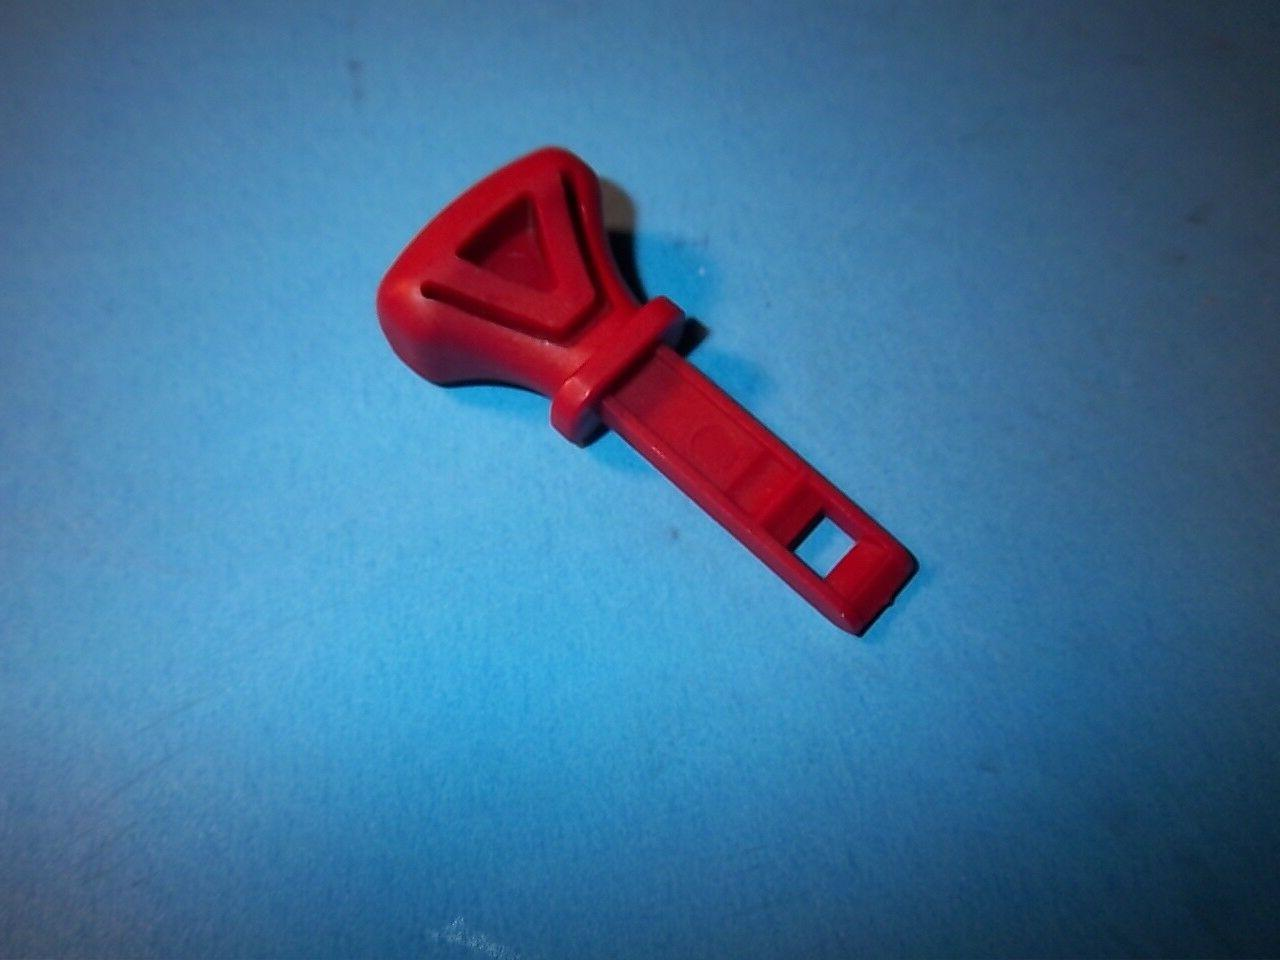 red snow blower ing key fits many